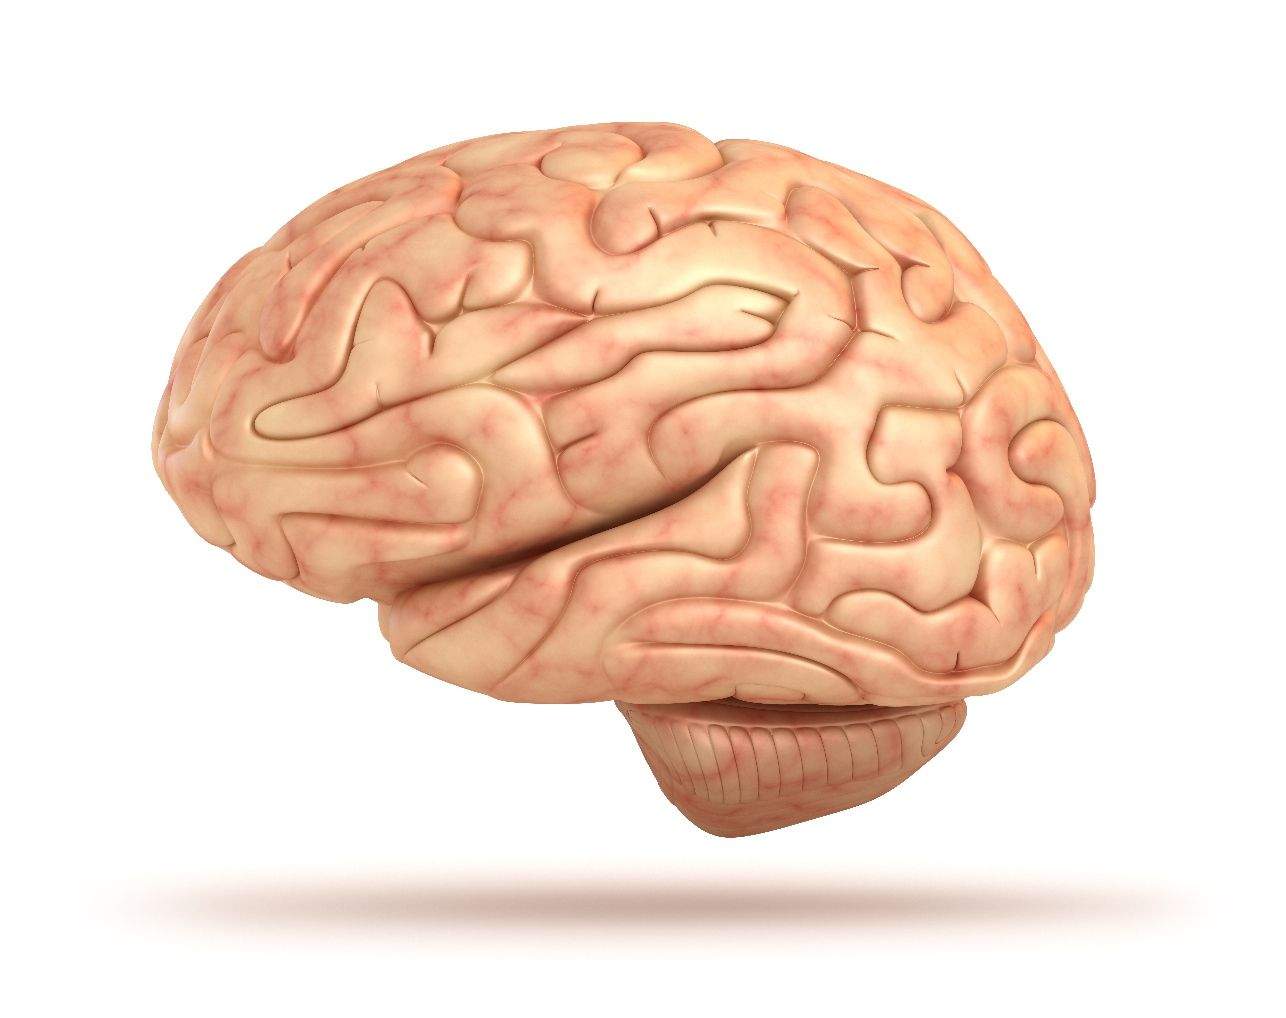 Can You Rewire Your Brain to Change Bad Habits, Thoughts and ...